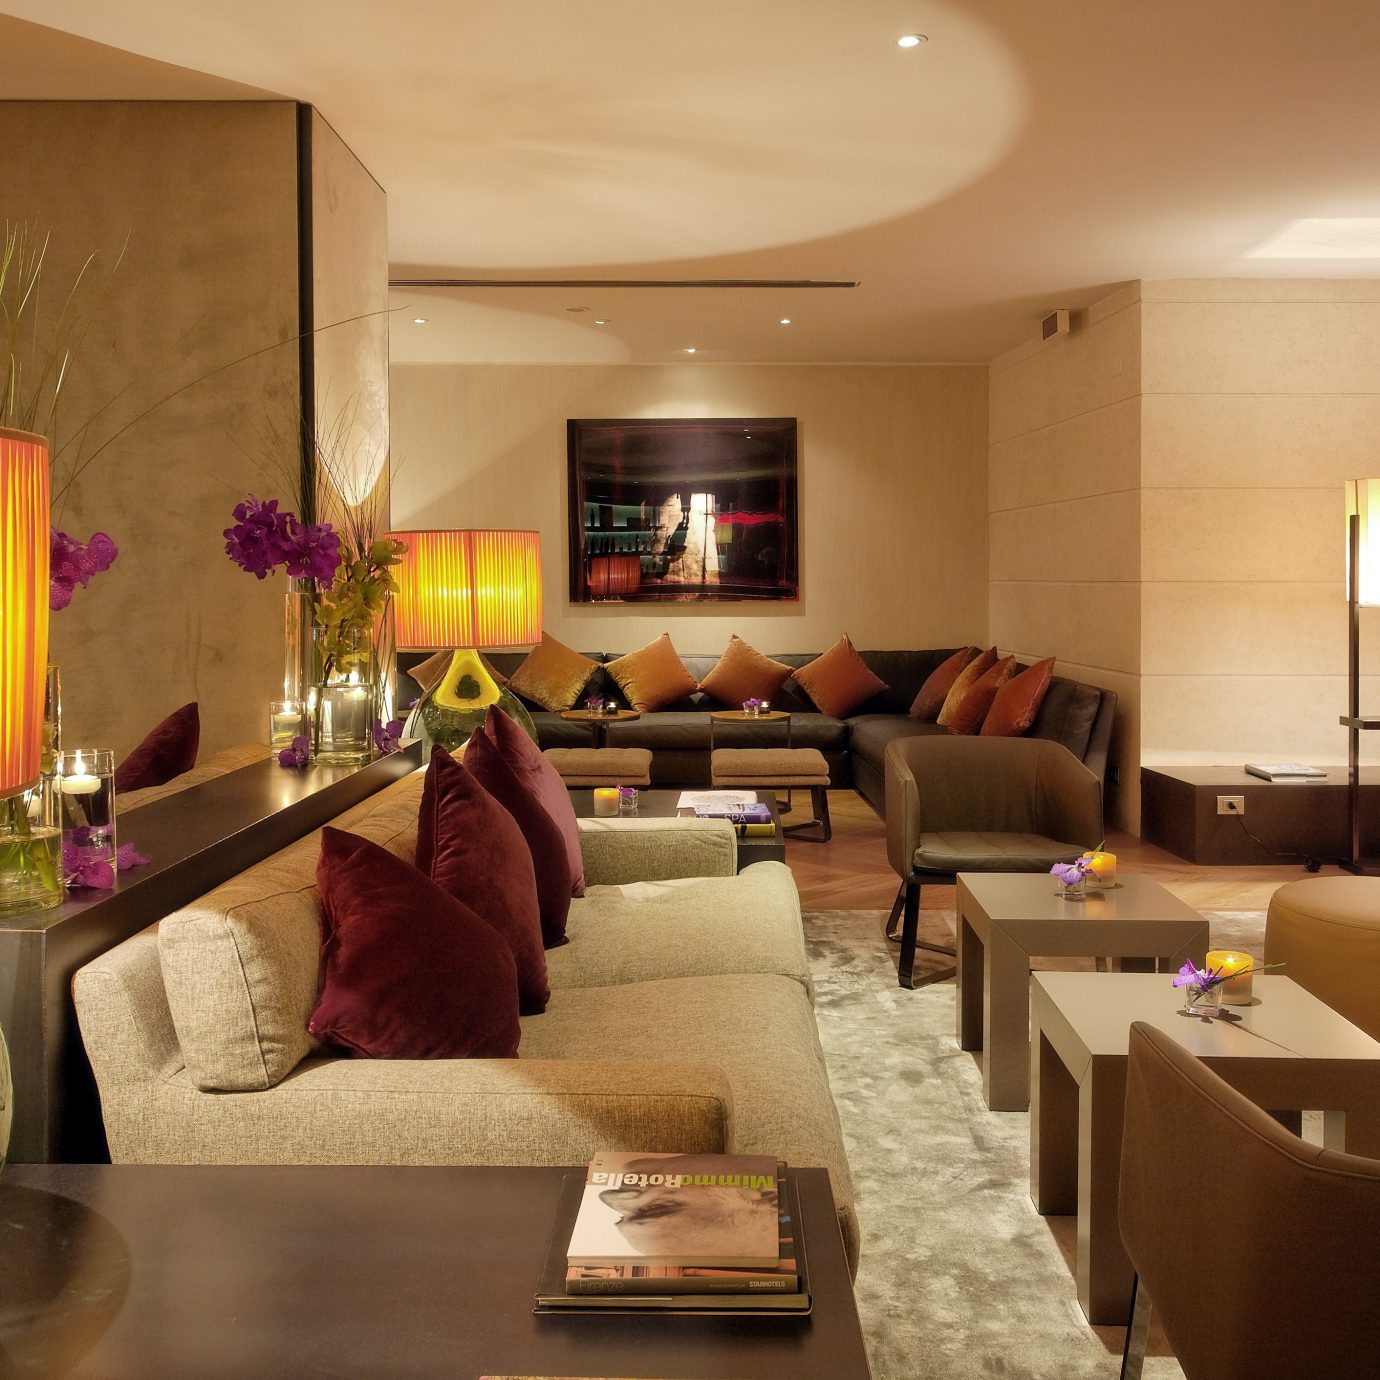 Budget City Classic Lobby Lounge property living room Suite home restaurant